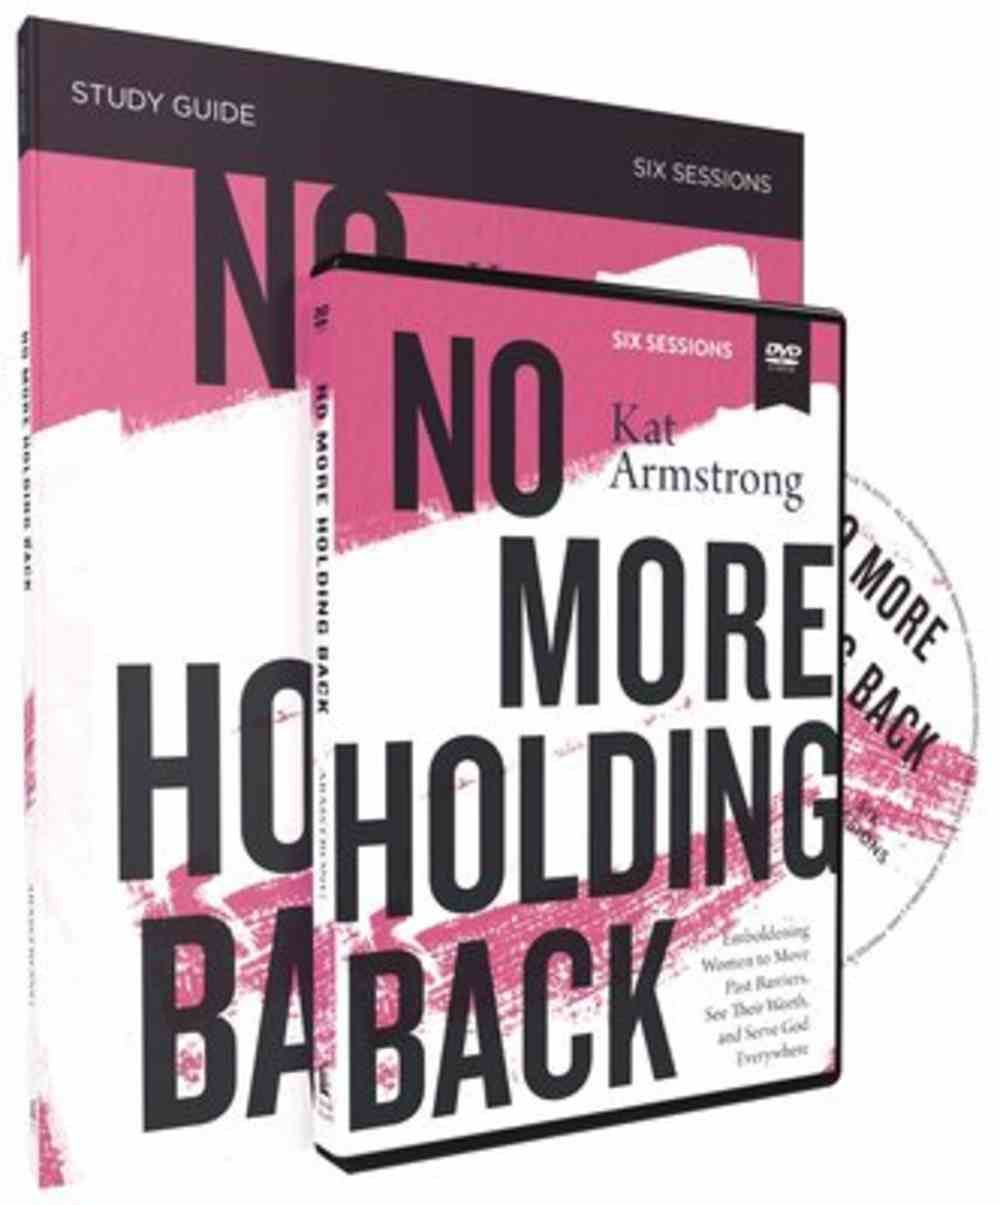 No More Holding Back: Empowering Women to Move Past Barriers, See Their Worth, and Serve God Everywhere (Study Guide With Dvd) Pack